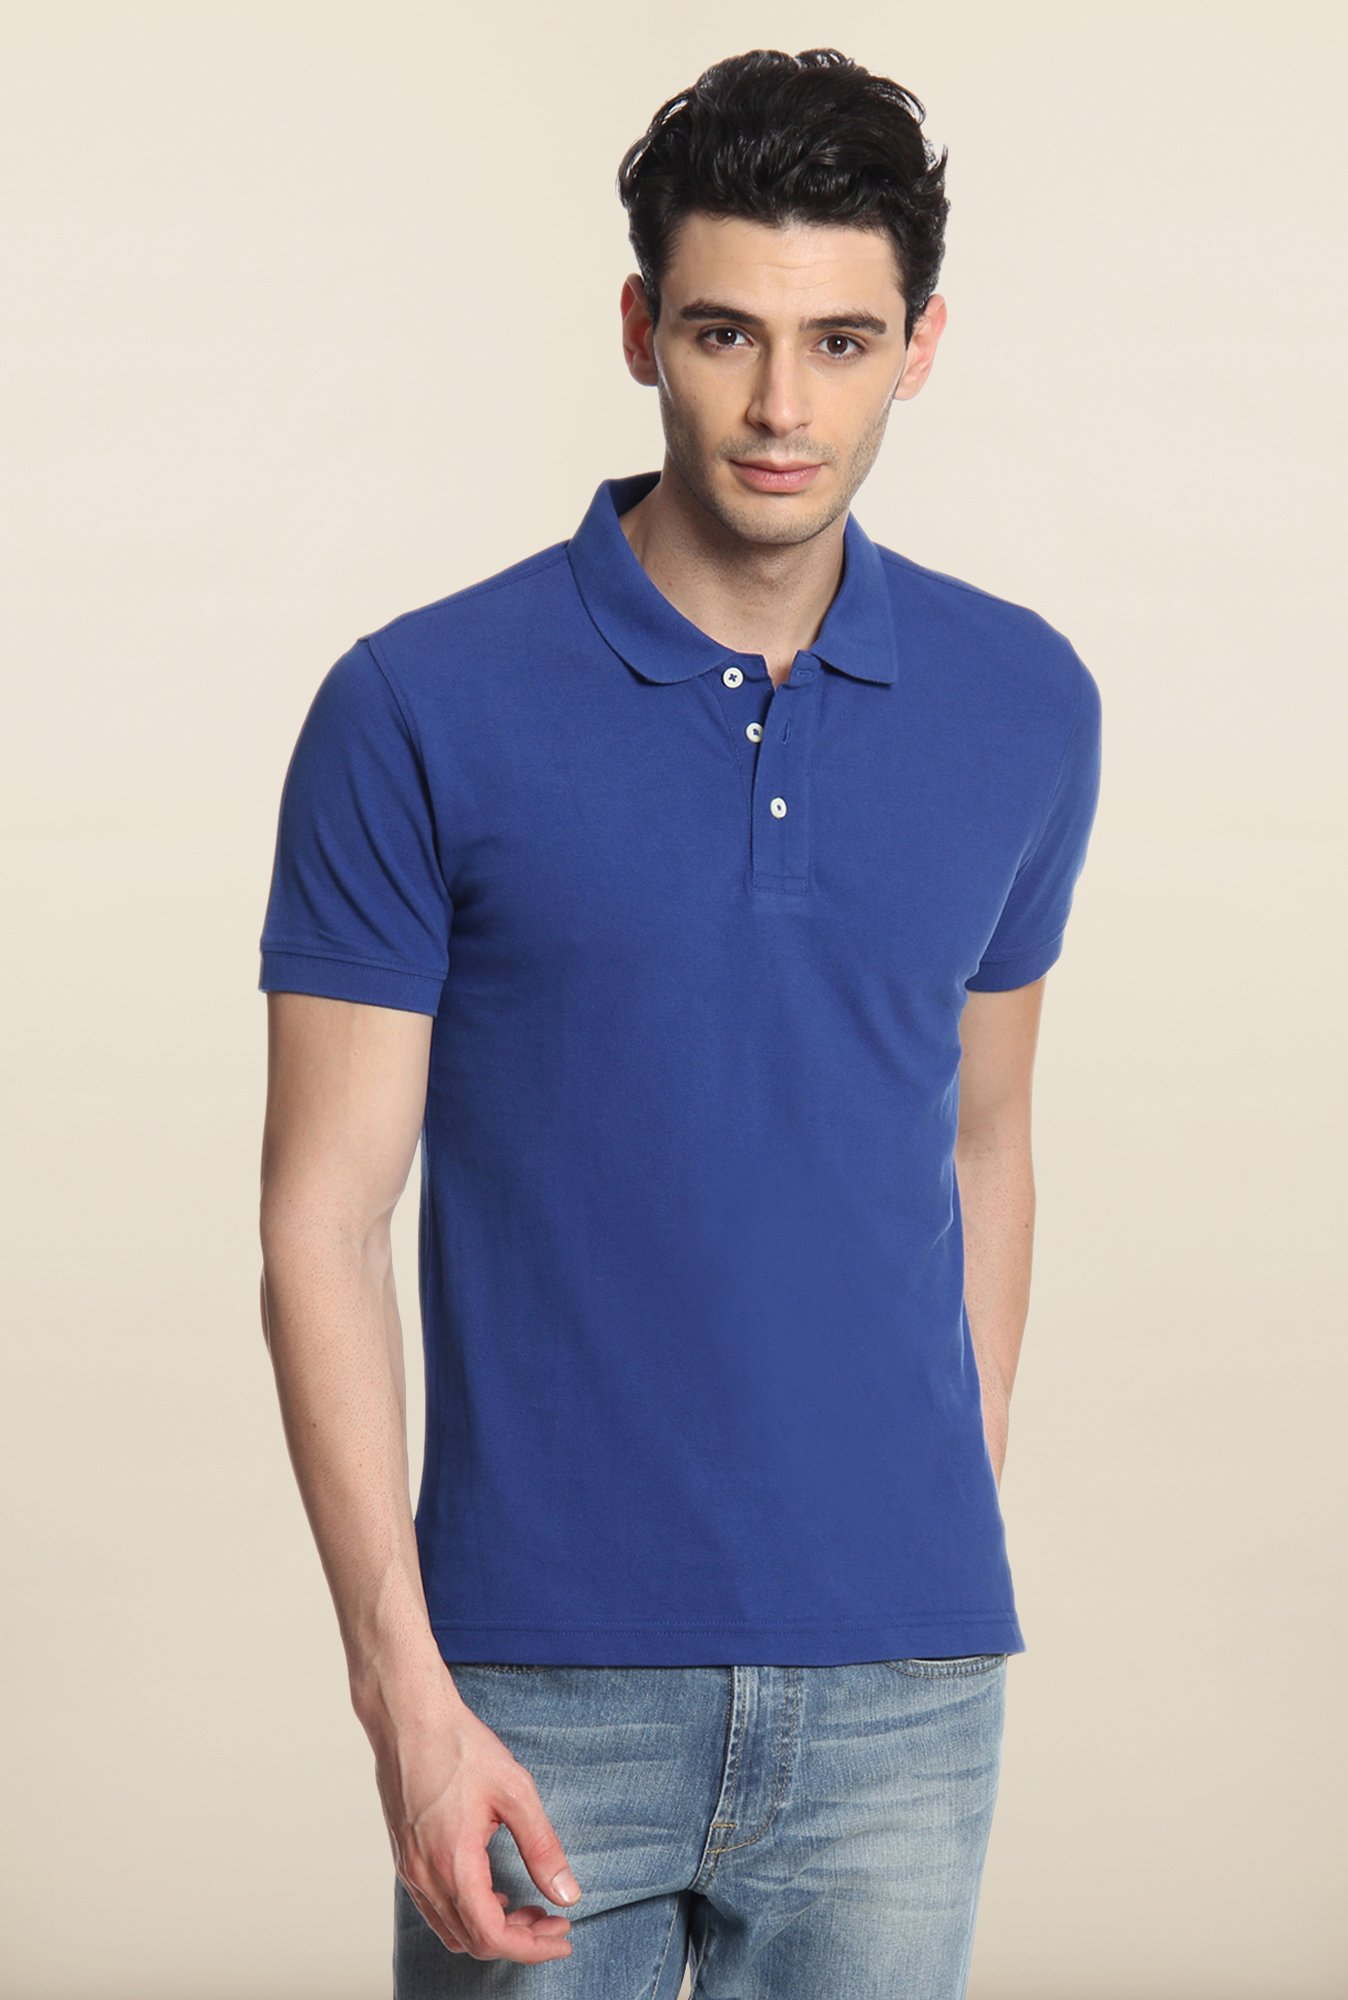 Cottonworld Blue Solid Polo T-Shirt